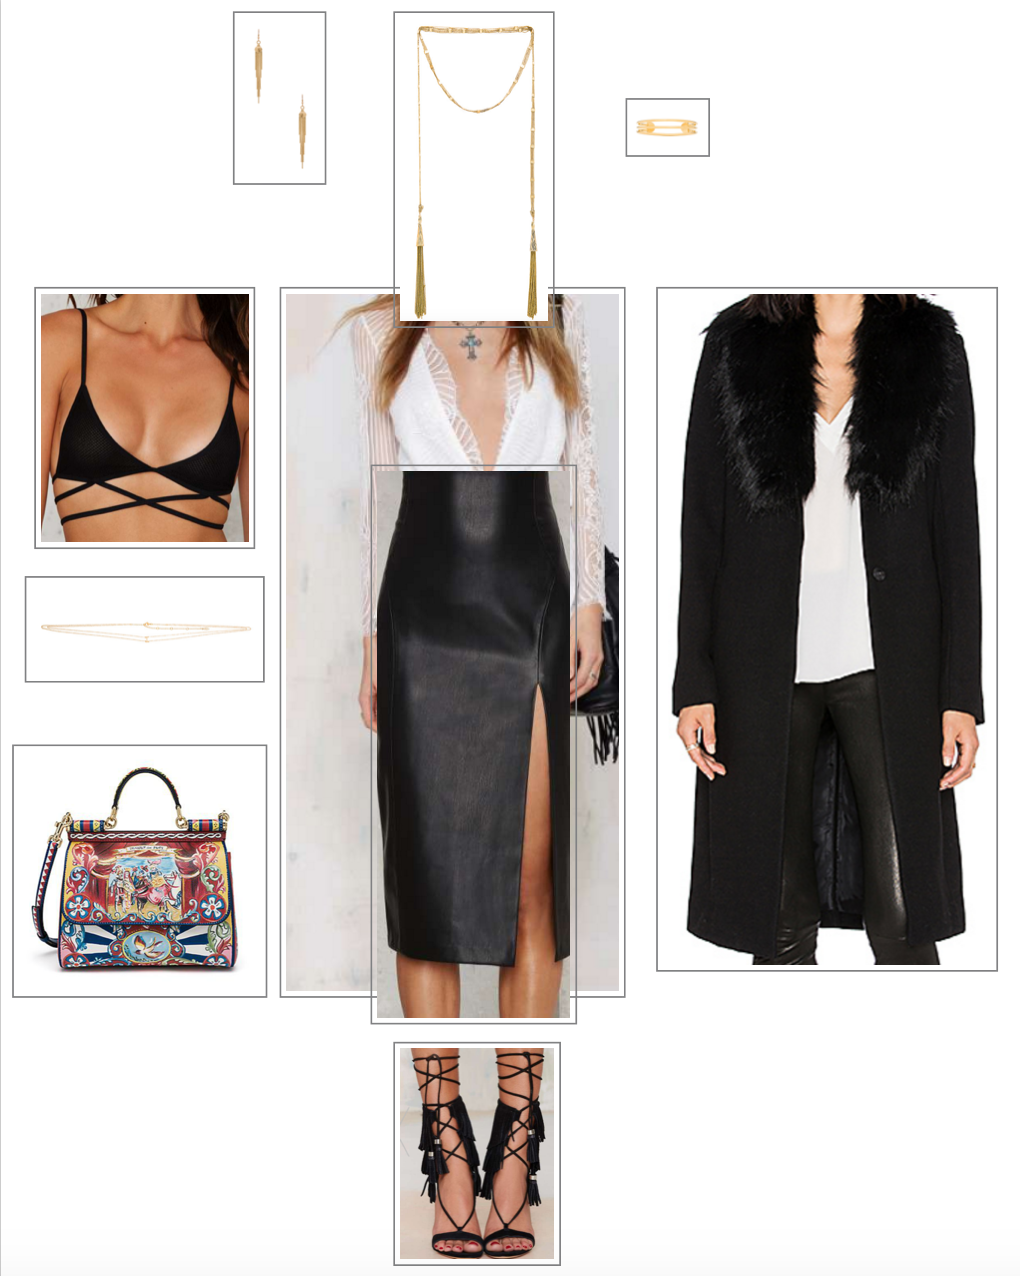 OUTFIT 1 : Dinner party